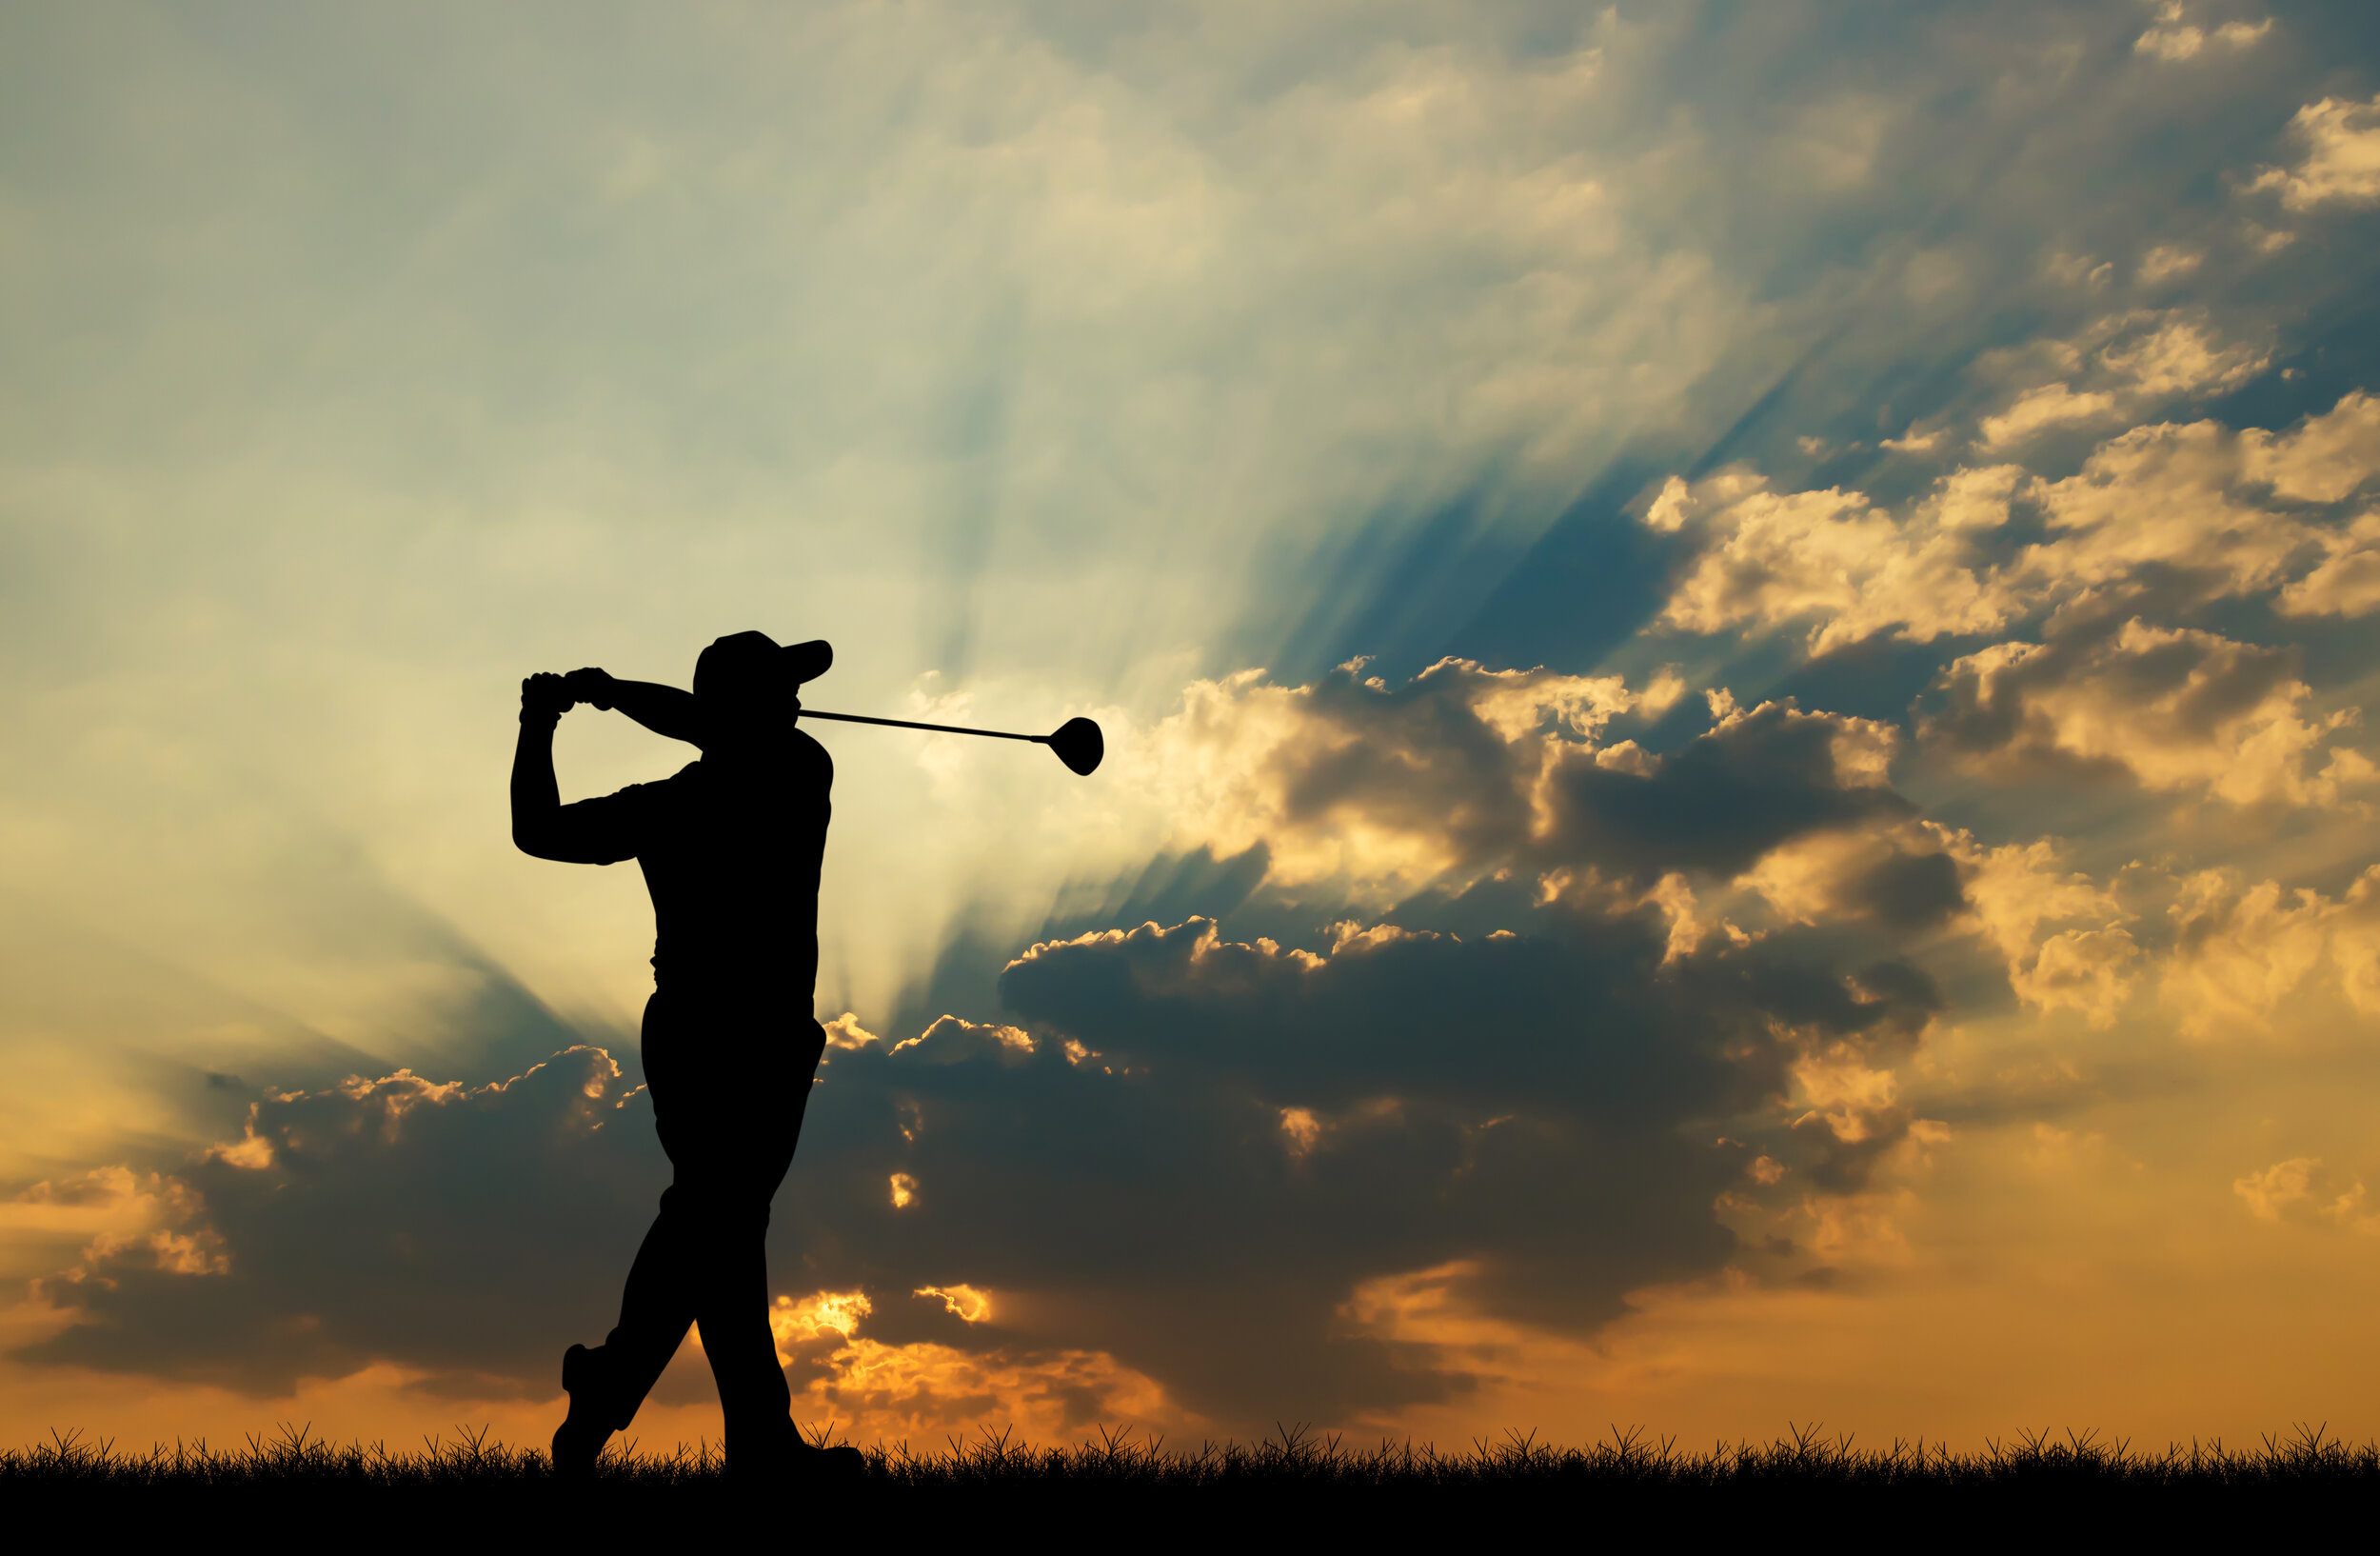 Yoga for golfers - Both Private and group classes available starting in November* Reduce Back Pain* Improve your swing* Deepen your focus